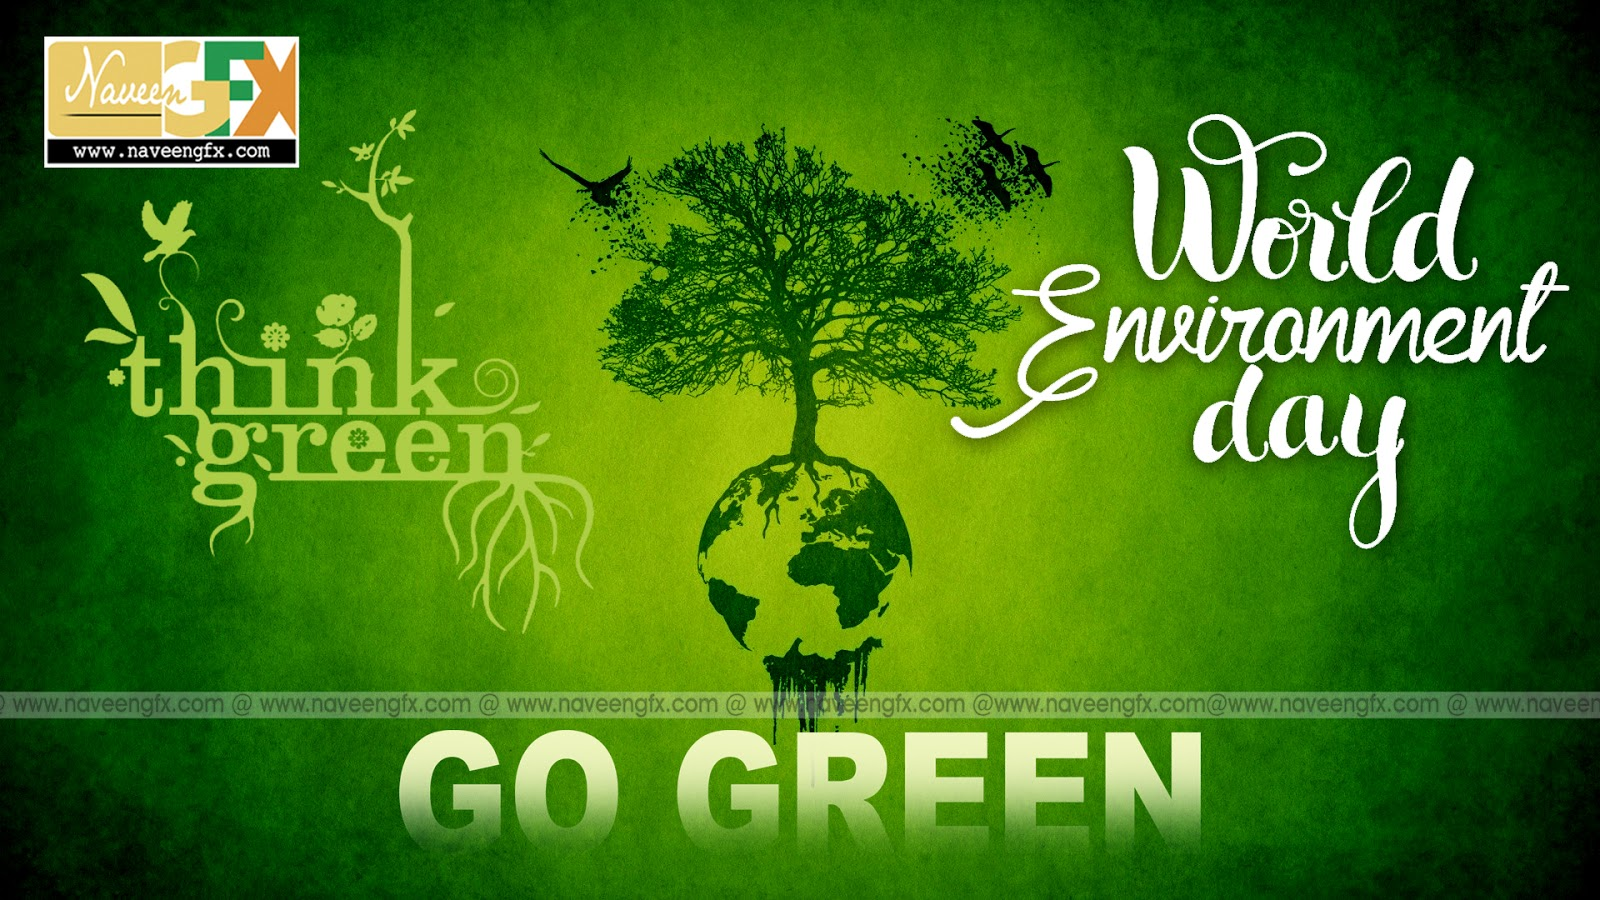 world environment day greetings and slogans in english ...